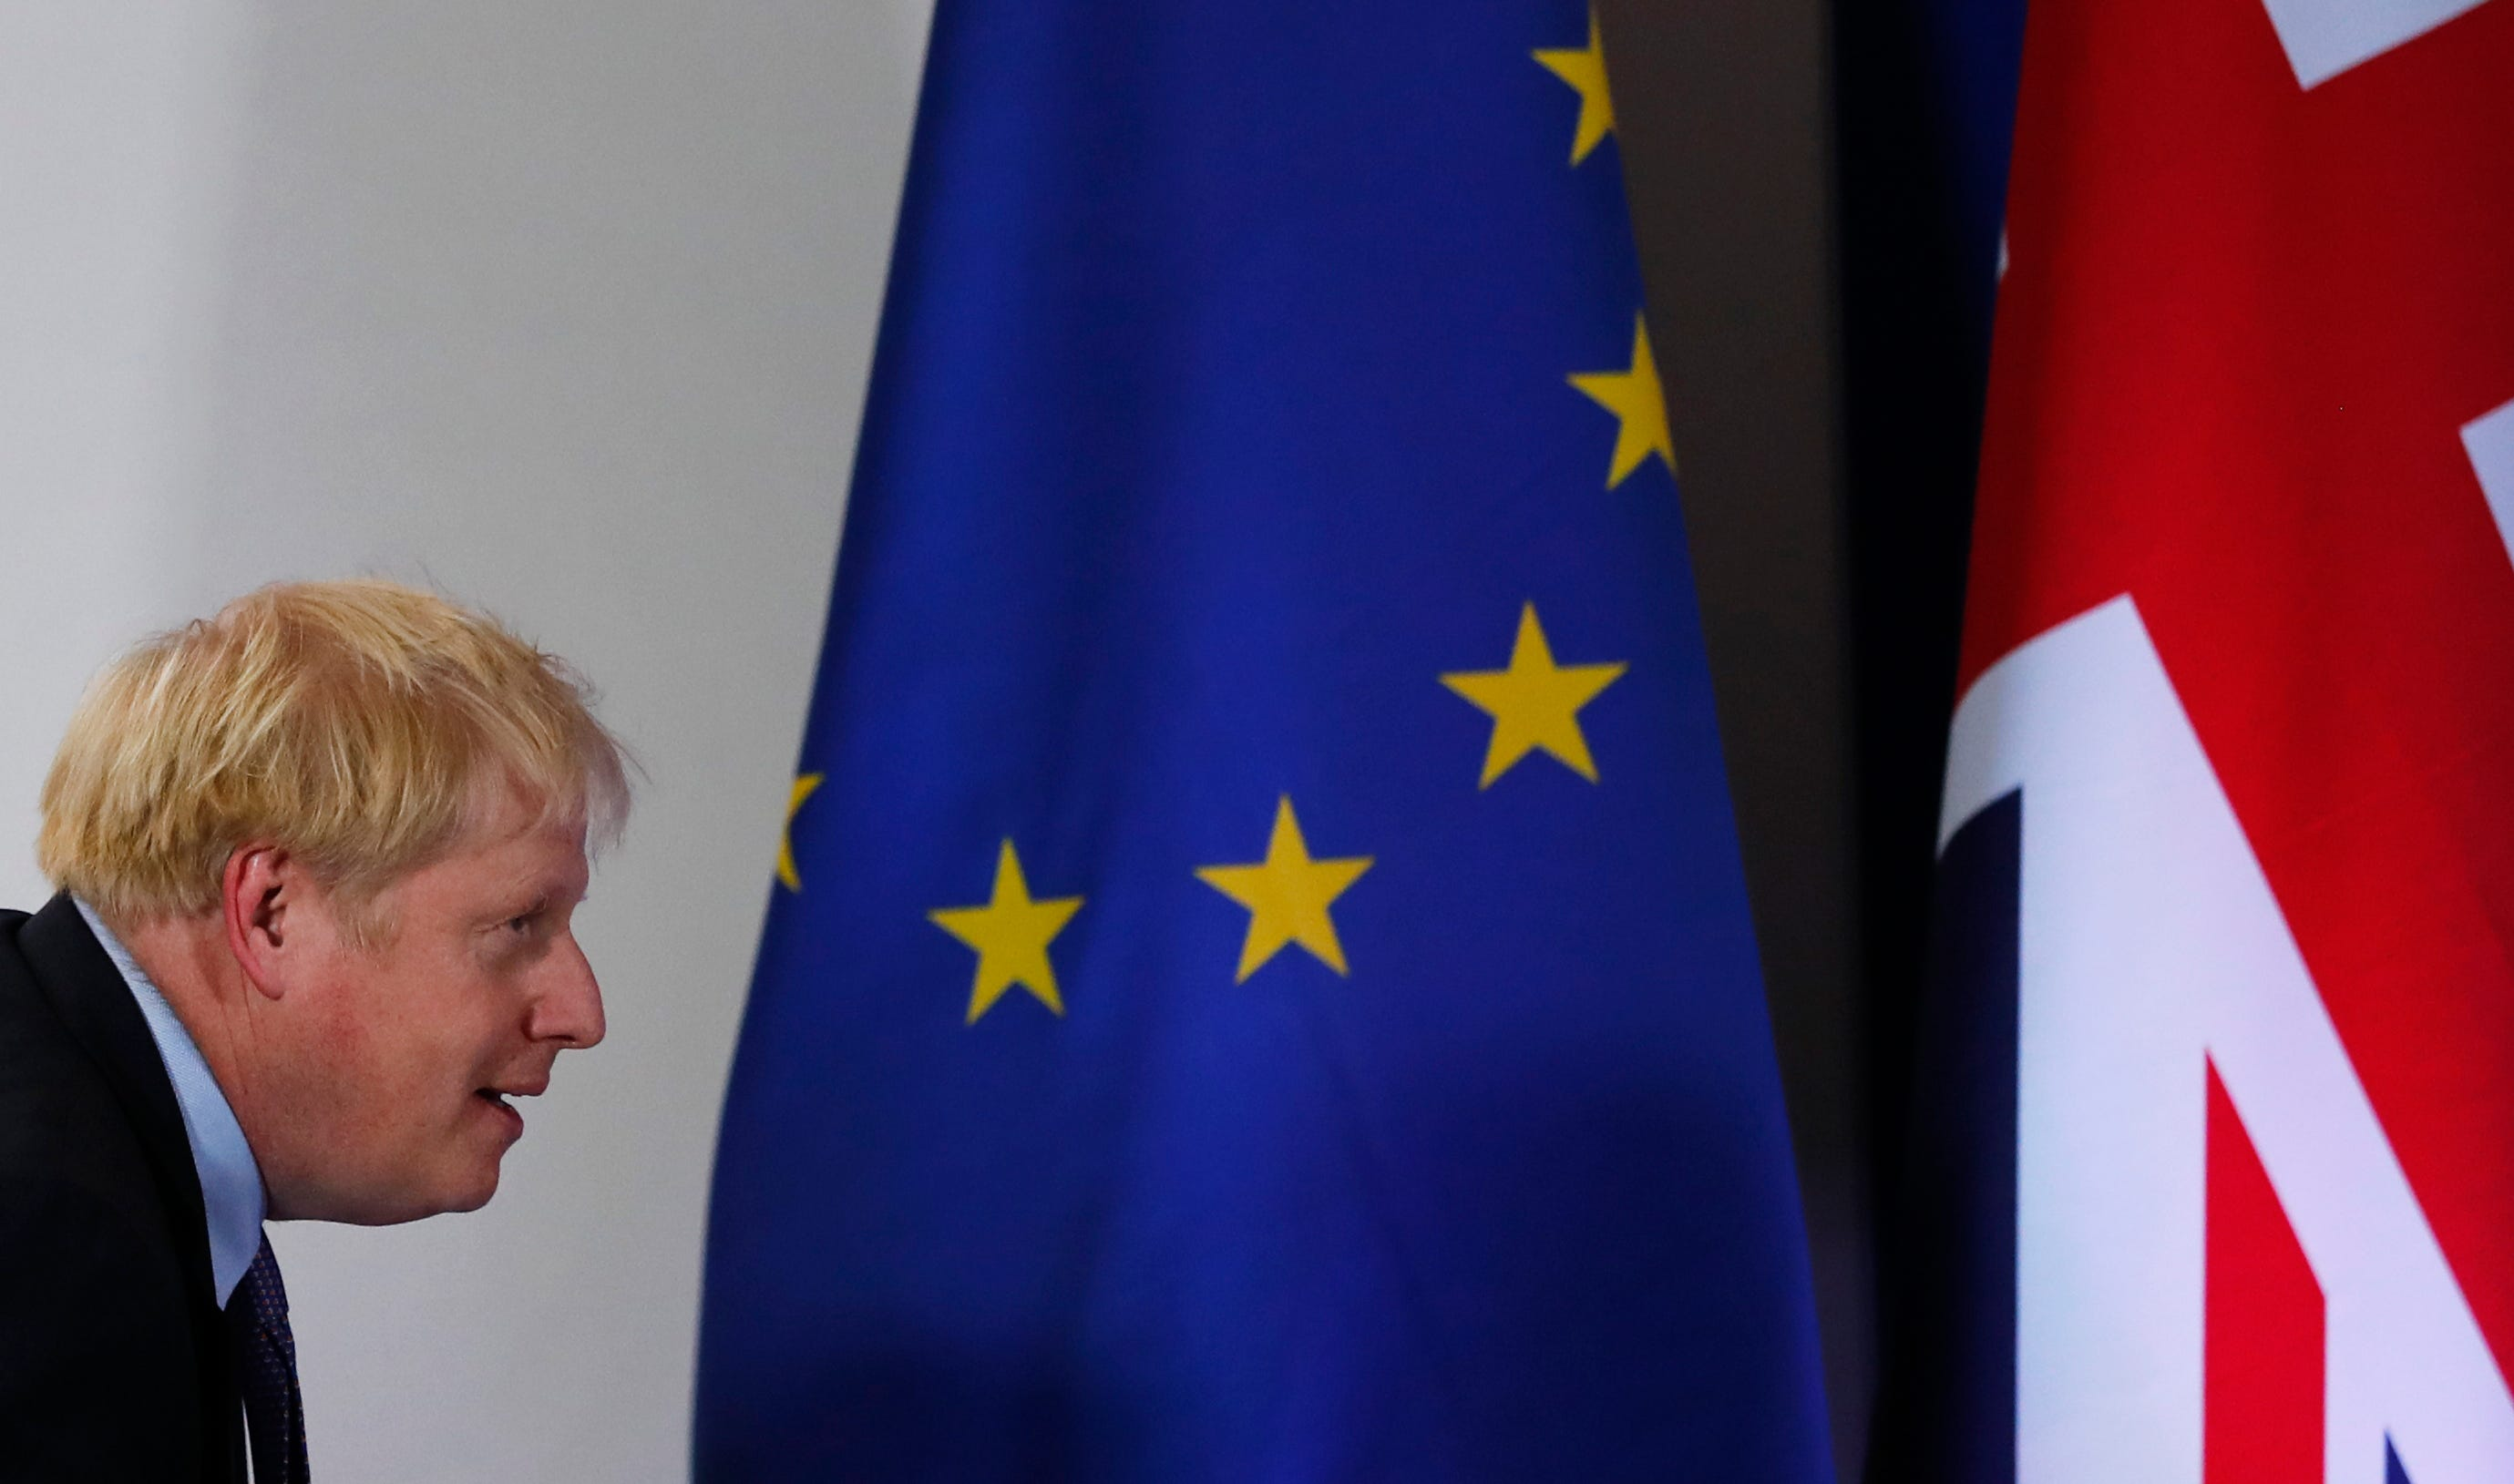 Acrimony, divisions, frustration: UK s 3-year Brexit battle nears end but it s not over